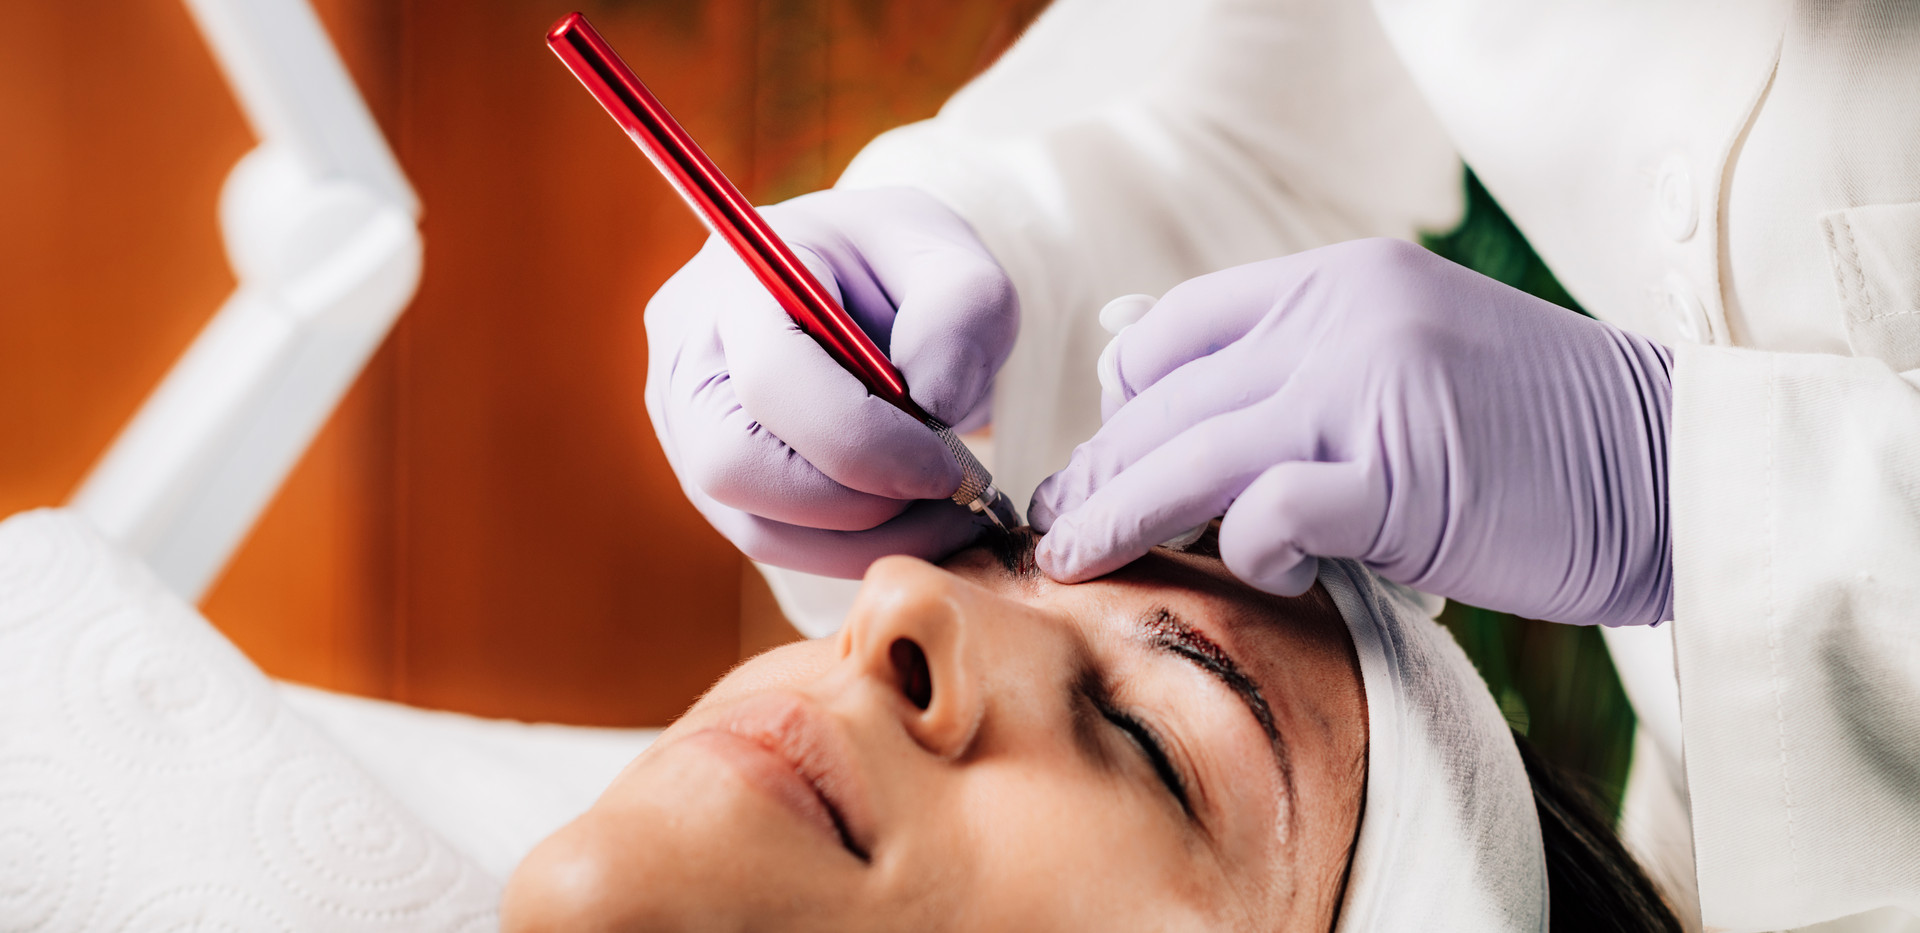 professional-microblading-of-eyebrows-7X